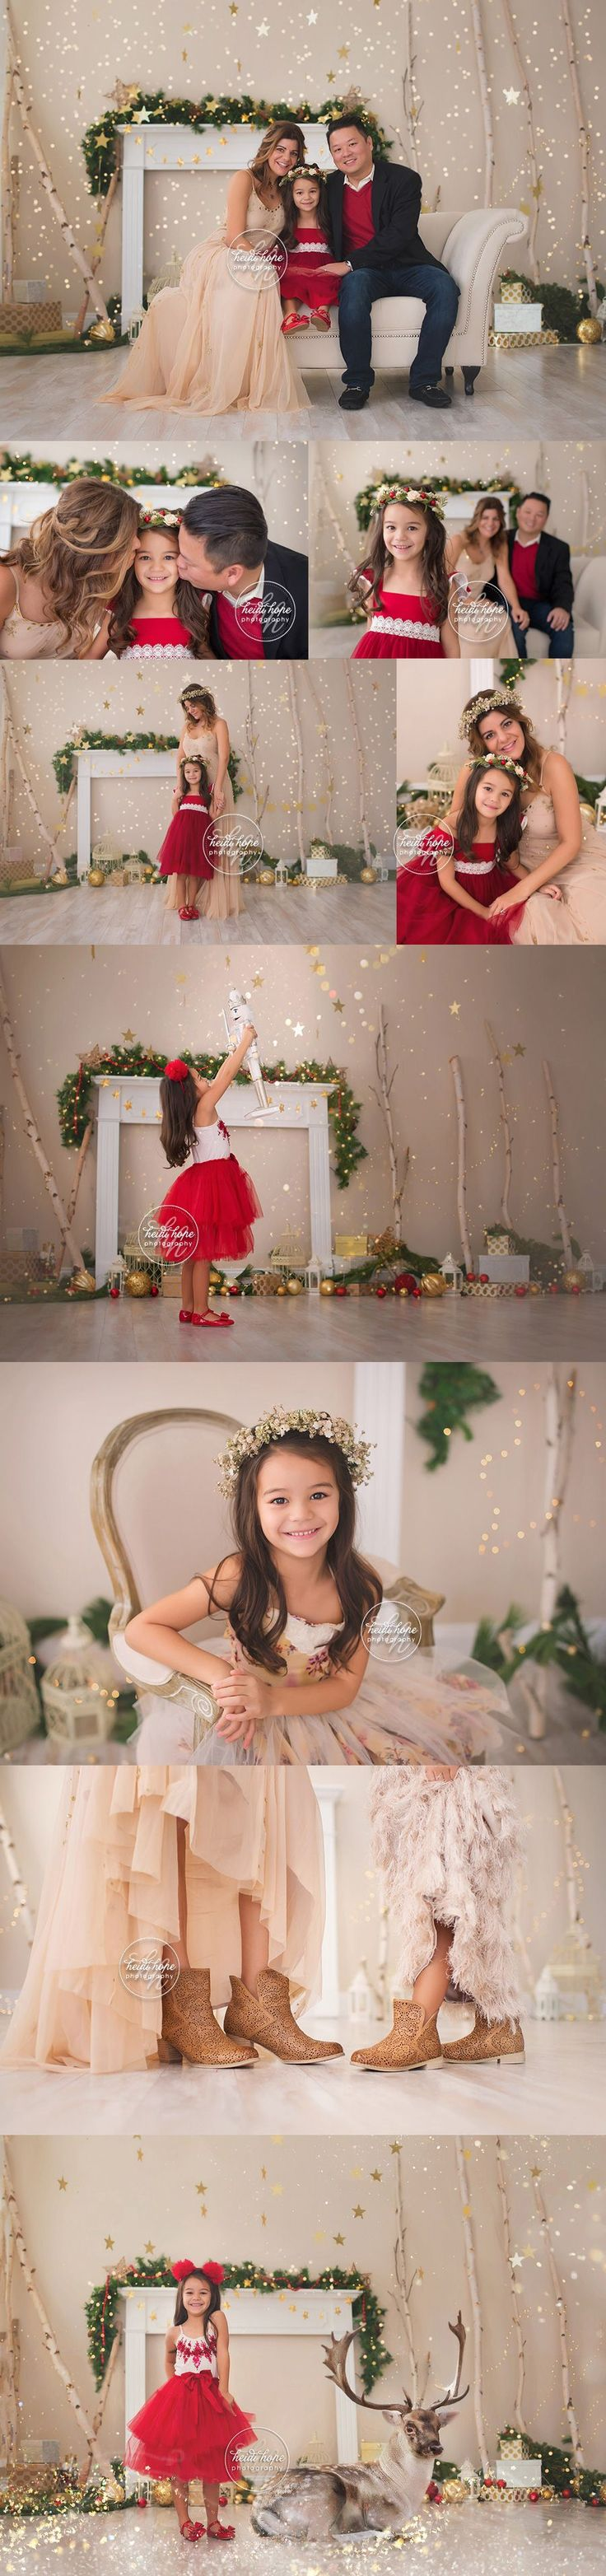 A sneak peek of the L family's magical Holiday portrait session! | Heidi Hope Photography  Studio portrait session Christmas 2016